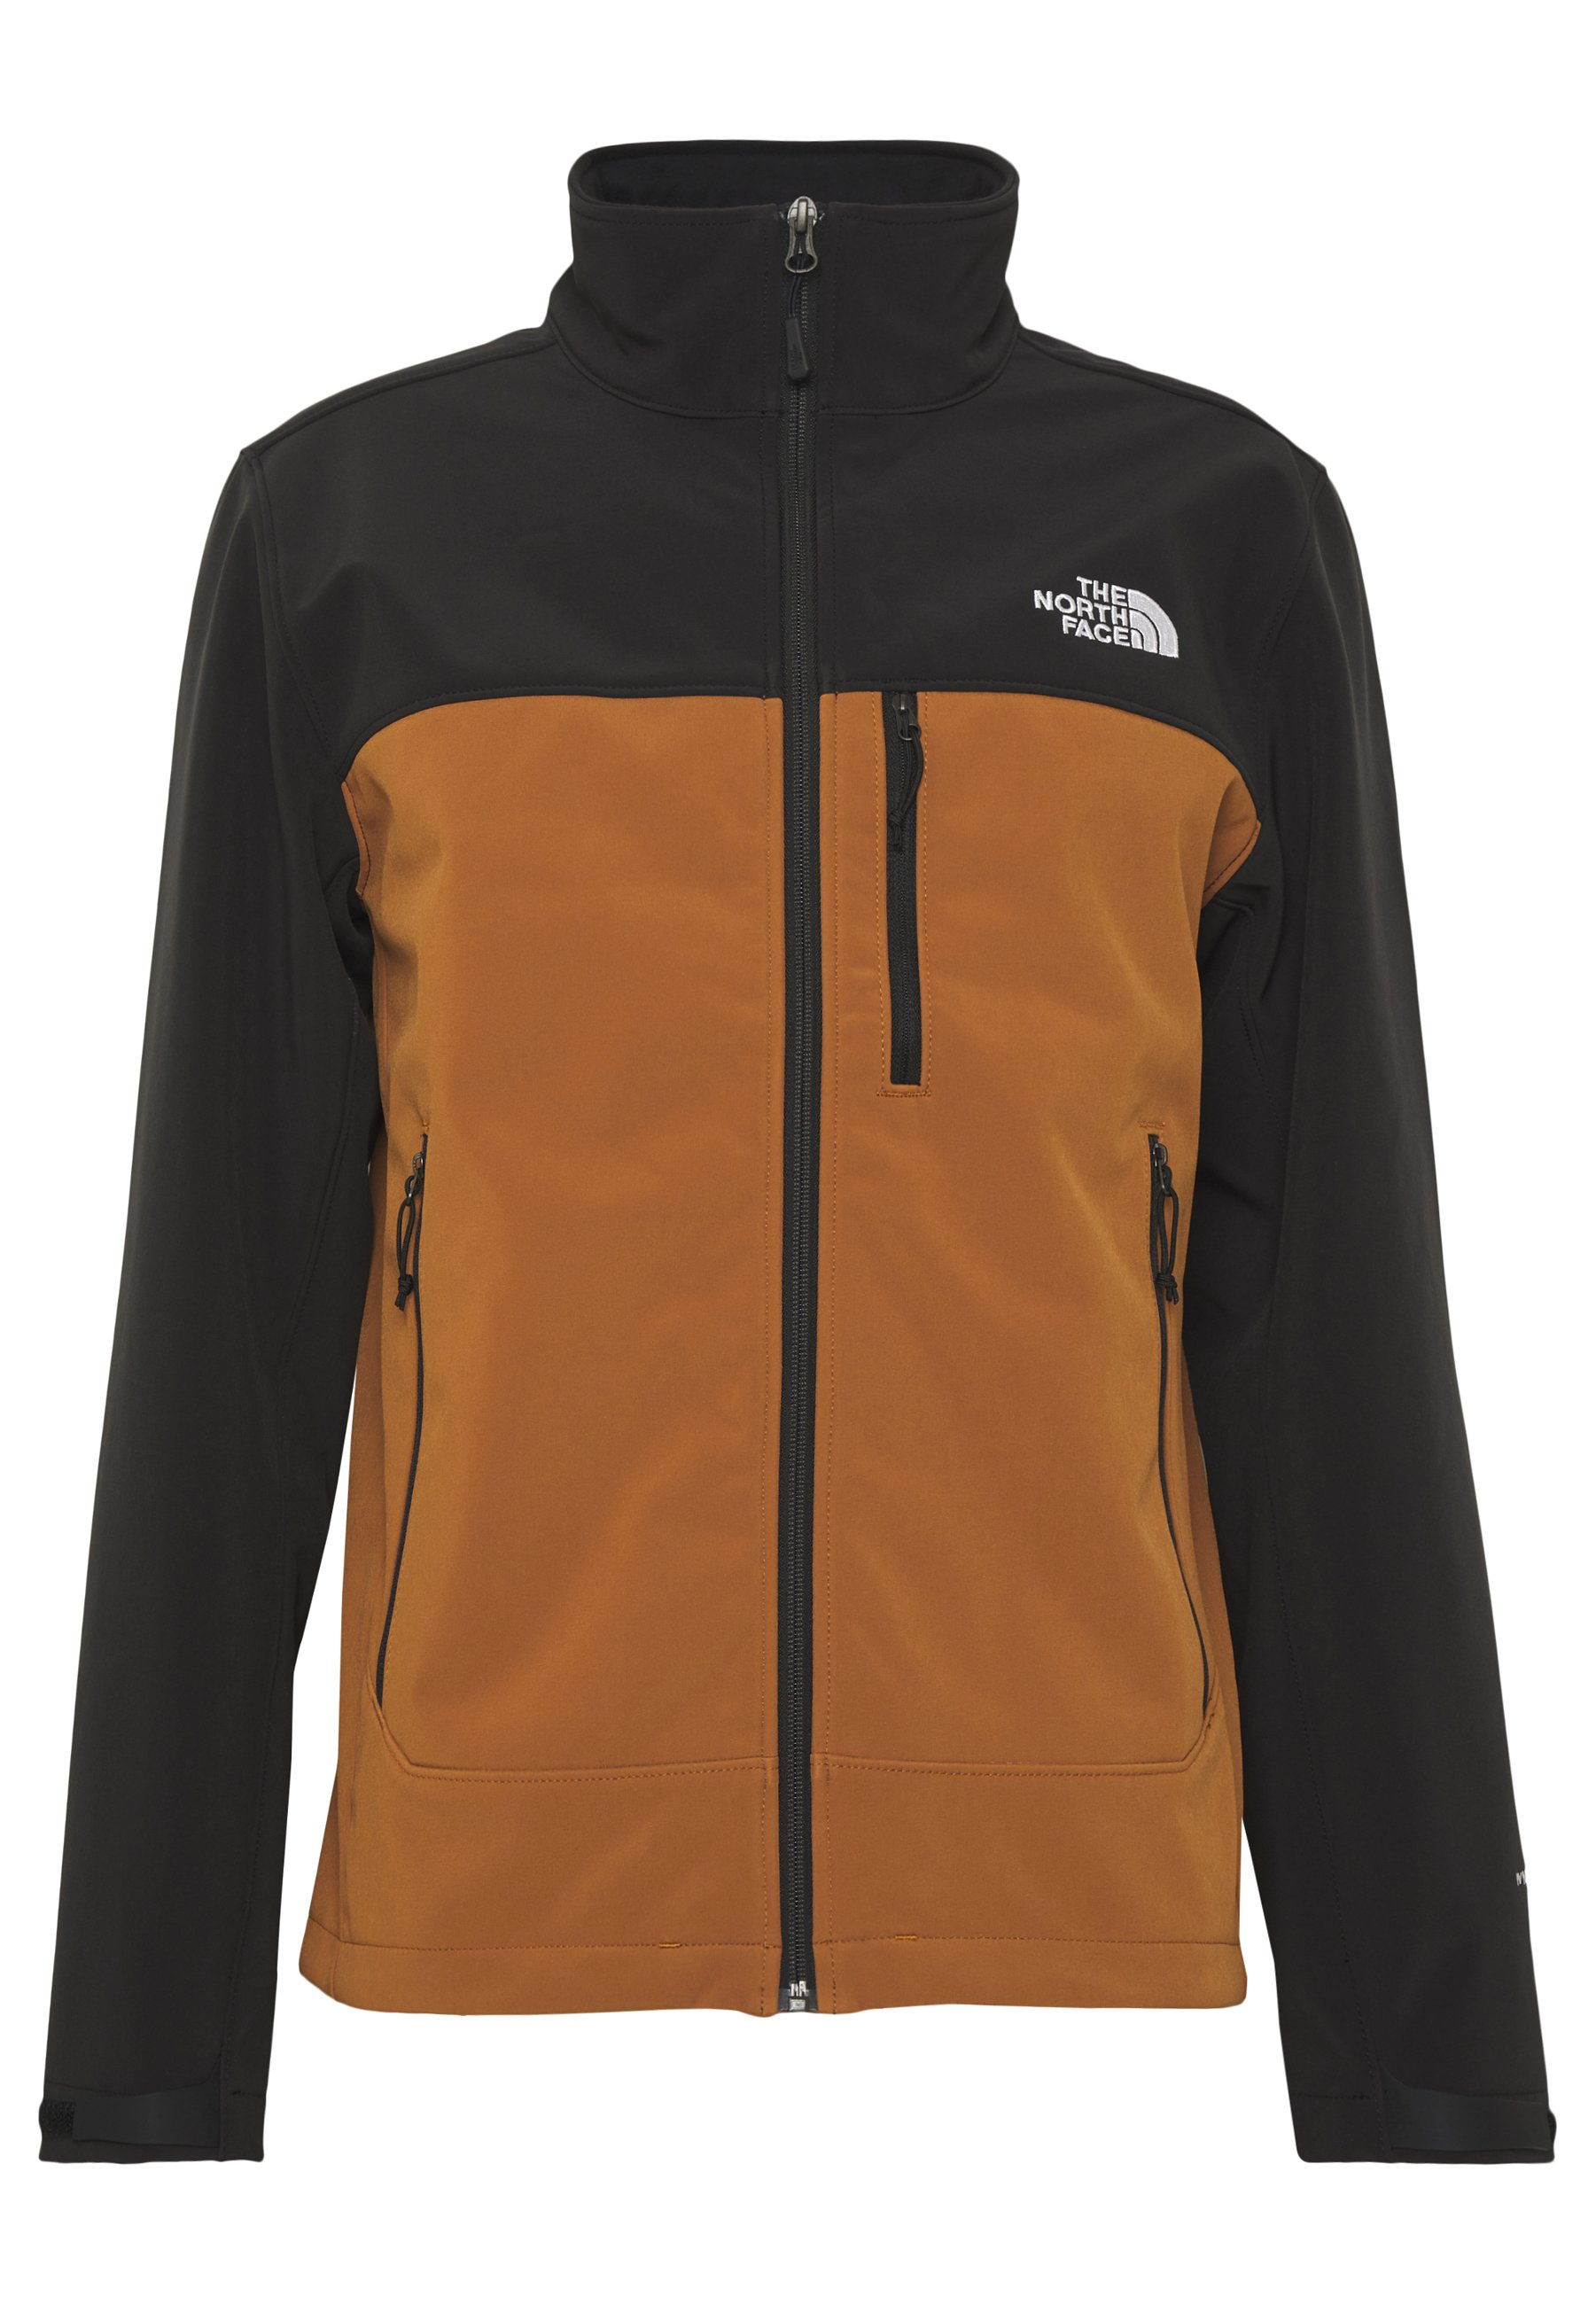 The North Face Mens Apex Bionic Jacket - Giacca Softshell Caramel Cafe 6OPjaqo